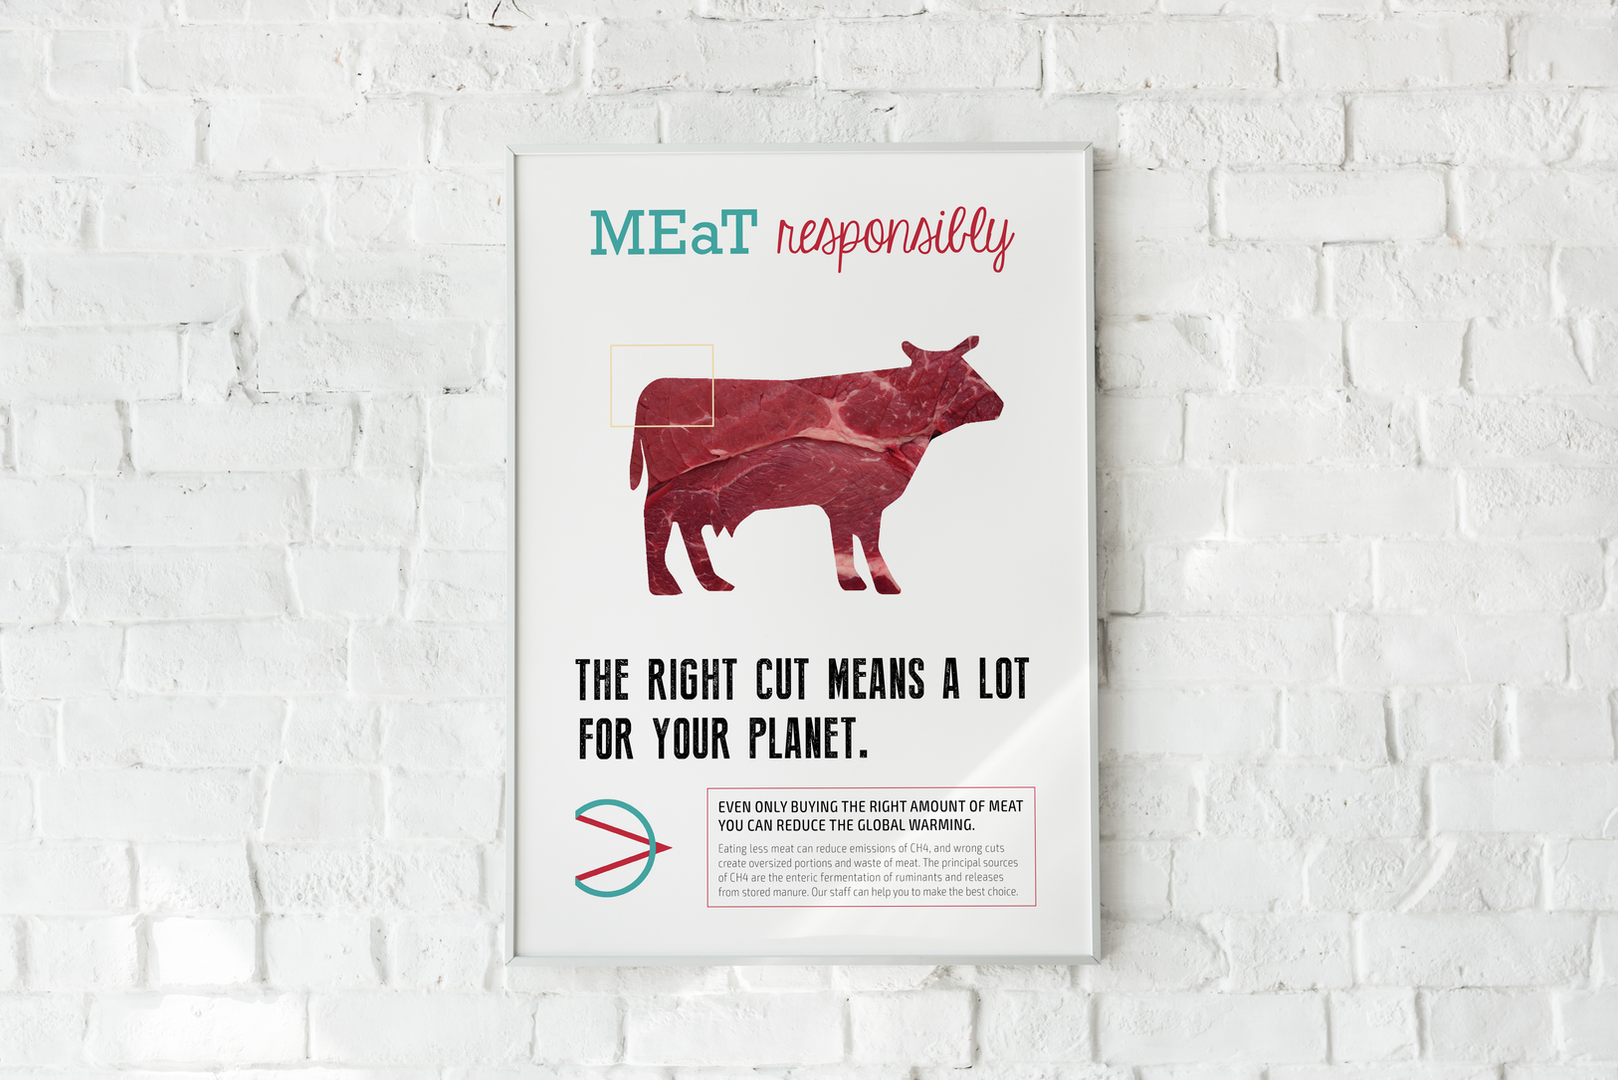 MeatResponsibly_007.png